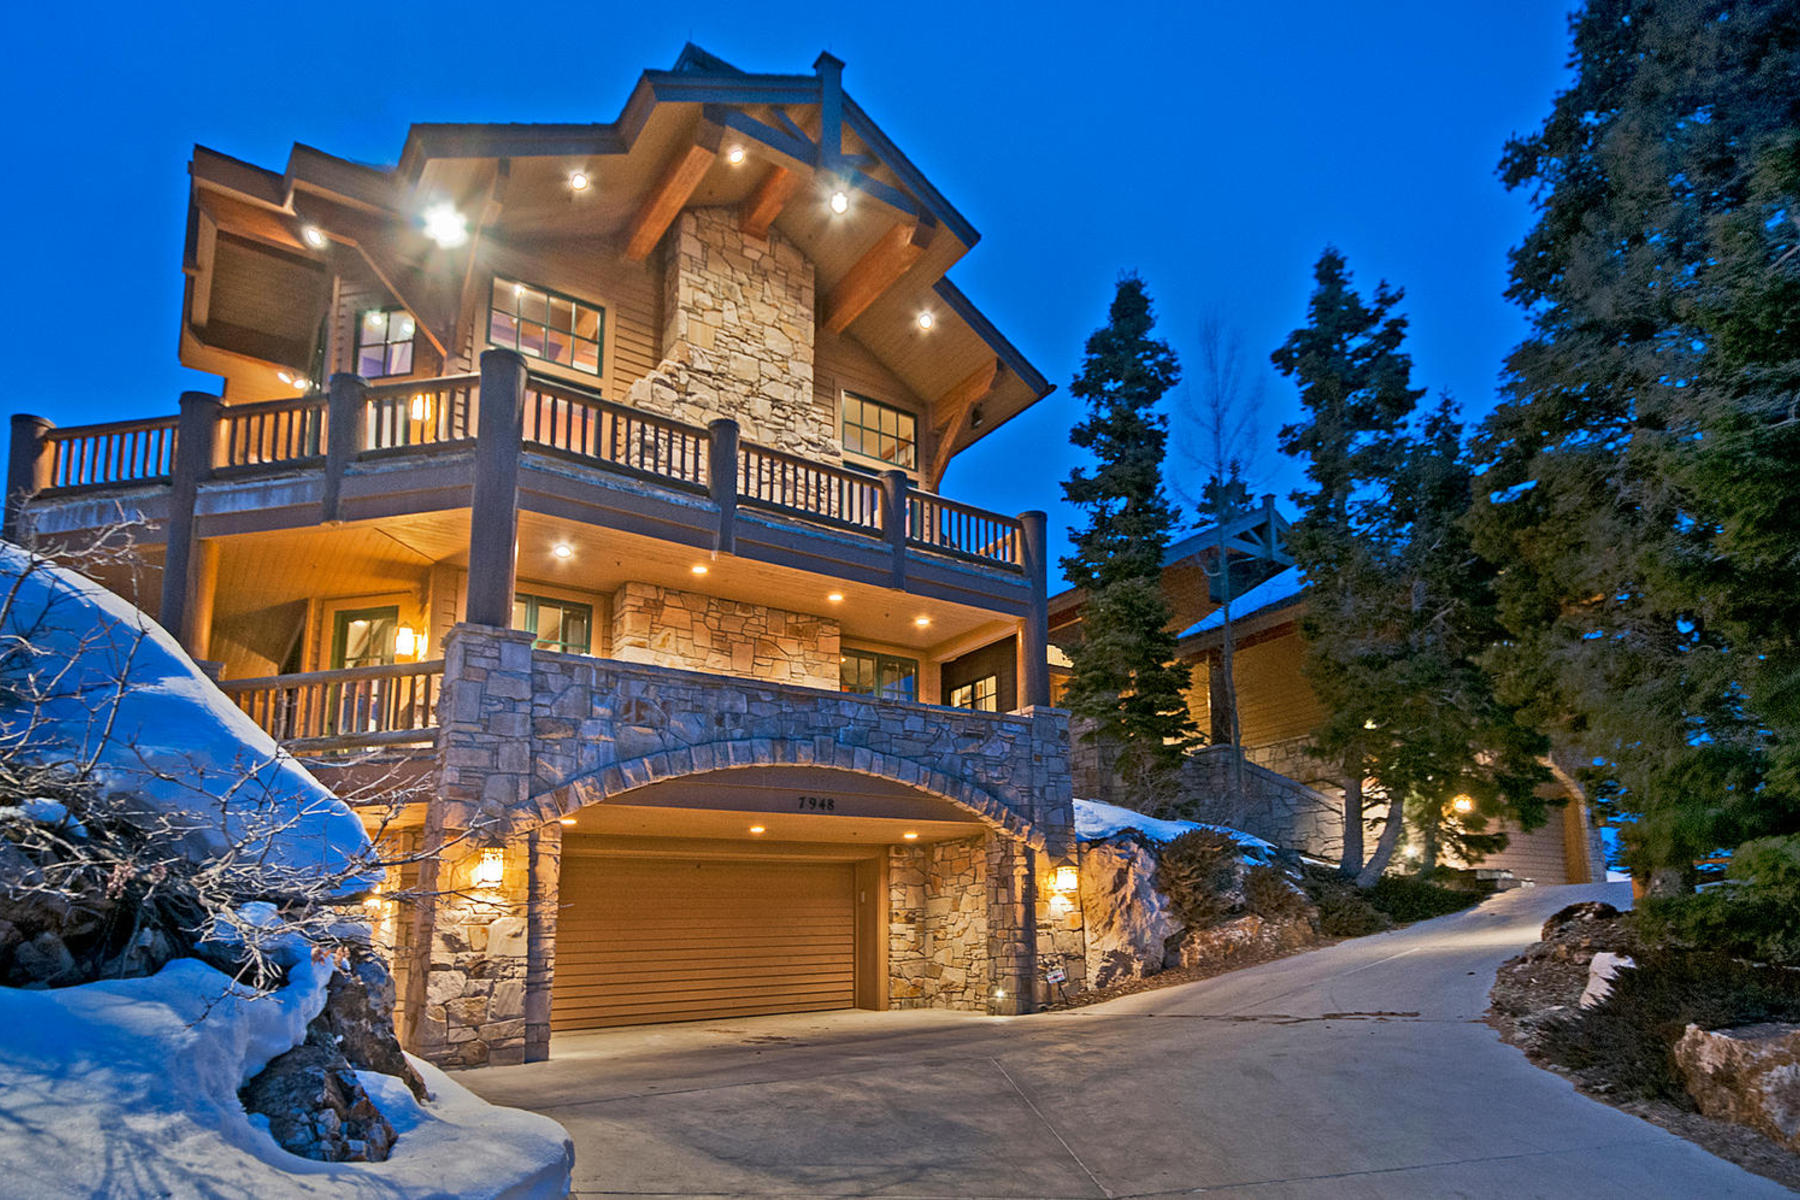 一戸建て のために 売買 アット Timeless Deer Valley Ski-In Ski-out Mountain Retreat 7948 Red Tail Ct Park City, ユタ, 84060 アメリカ合衆国